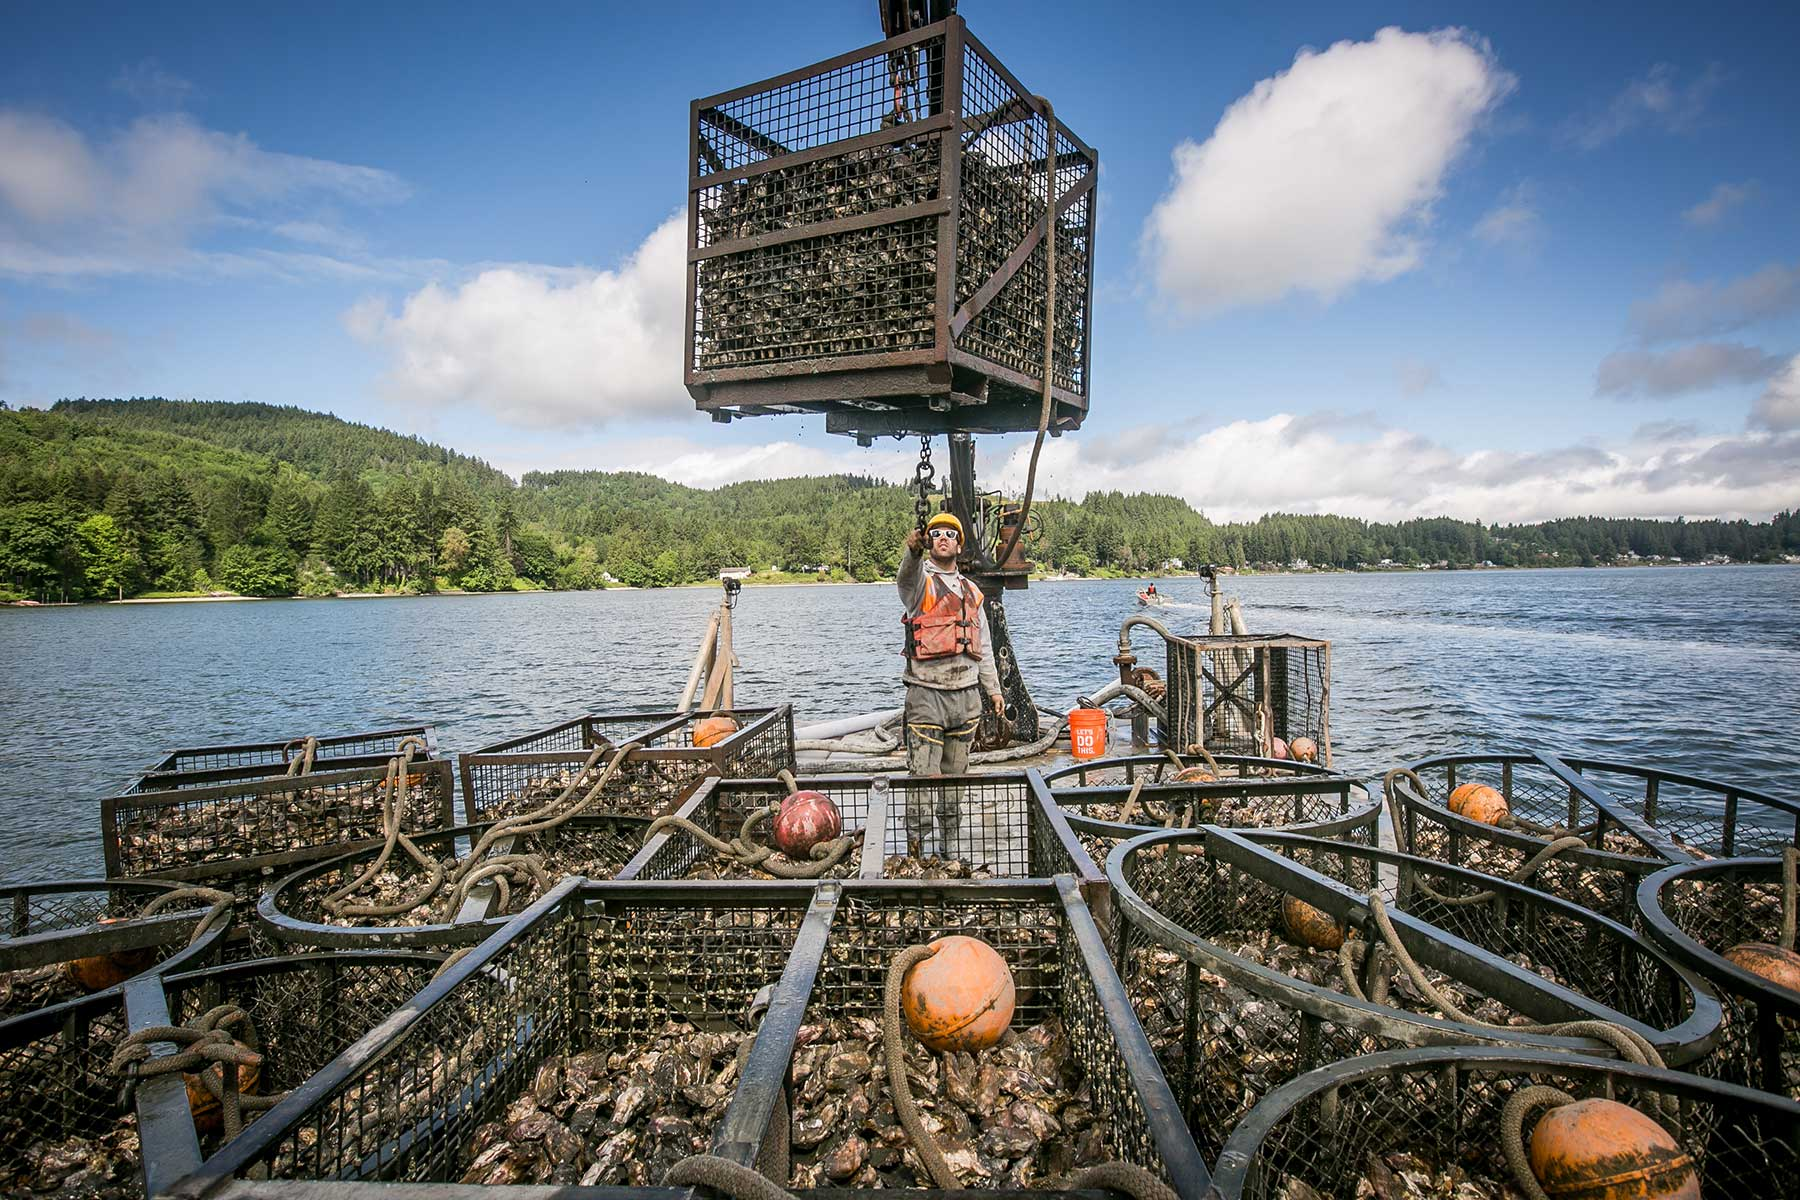 Adam Kravitz works on a boat to transplant oysters from one area to another in Mud Bay.